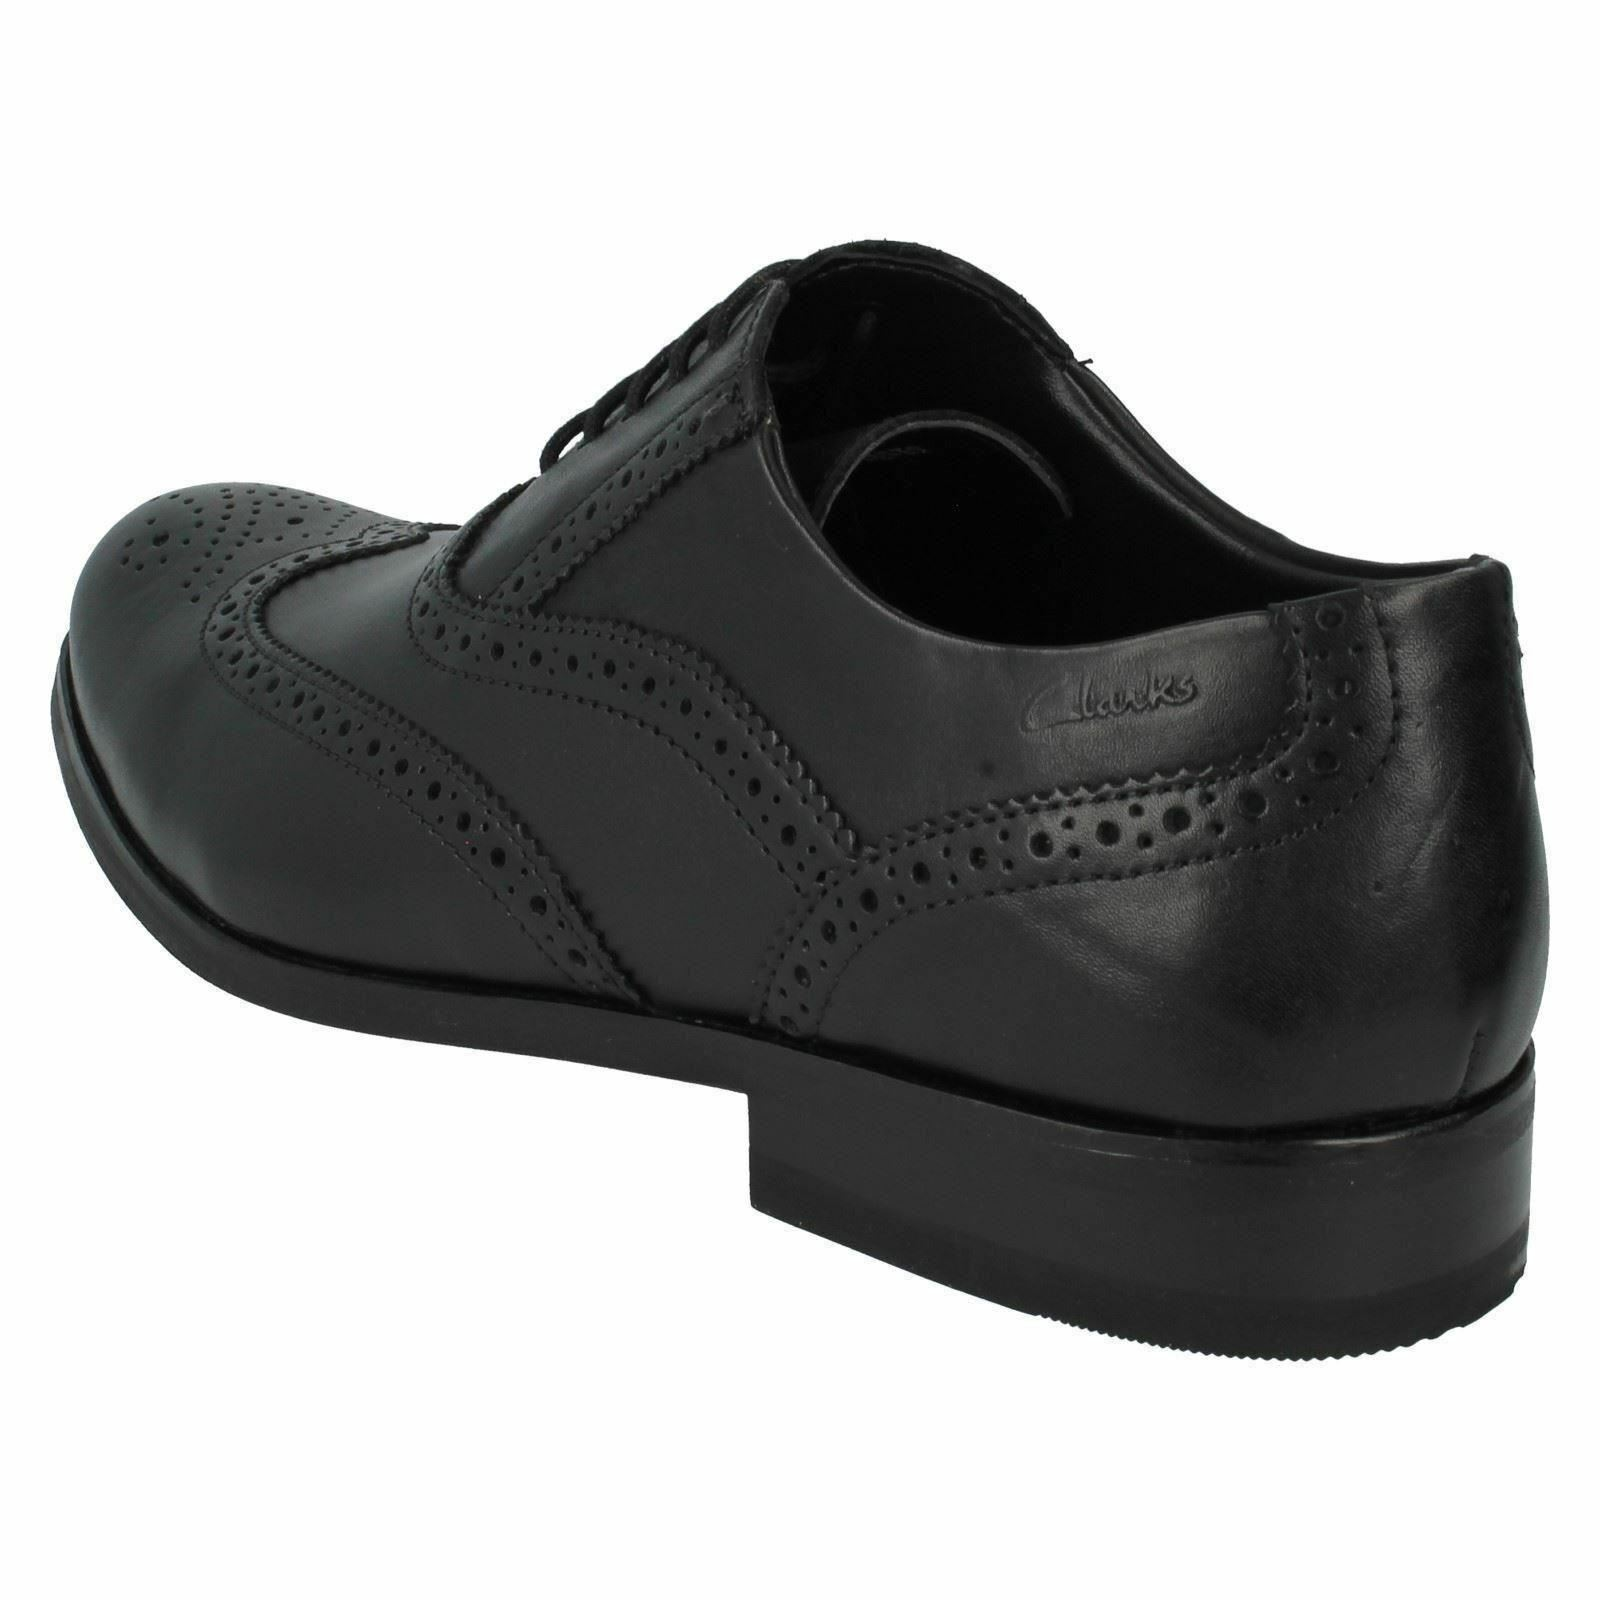 MENS BLACK Schuhe LEATHER LACE UP BROGUE Schuhe BLACK BY CLARKS BRINT BROGUE G FIT £44.99 a21bc7